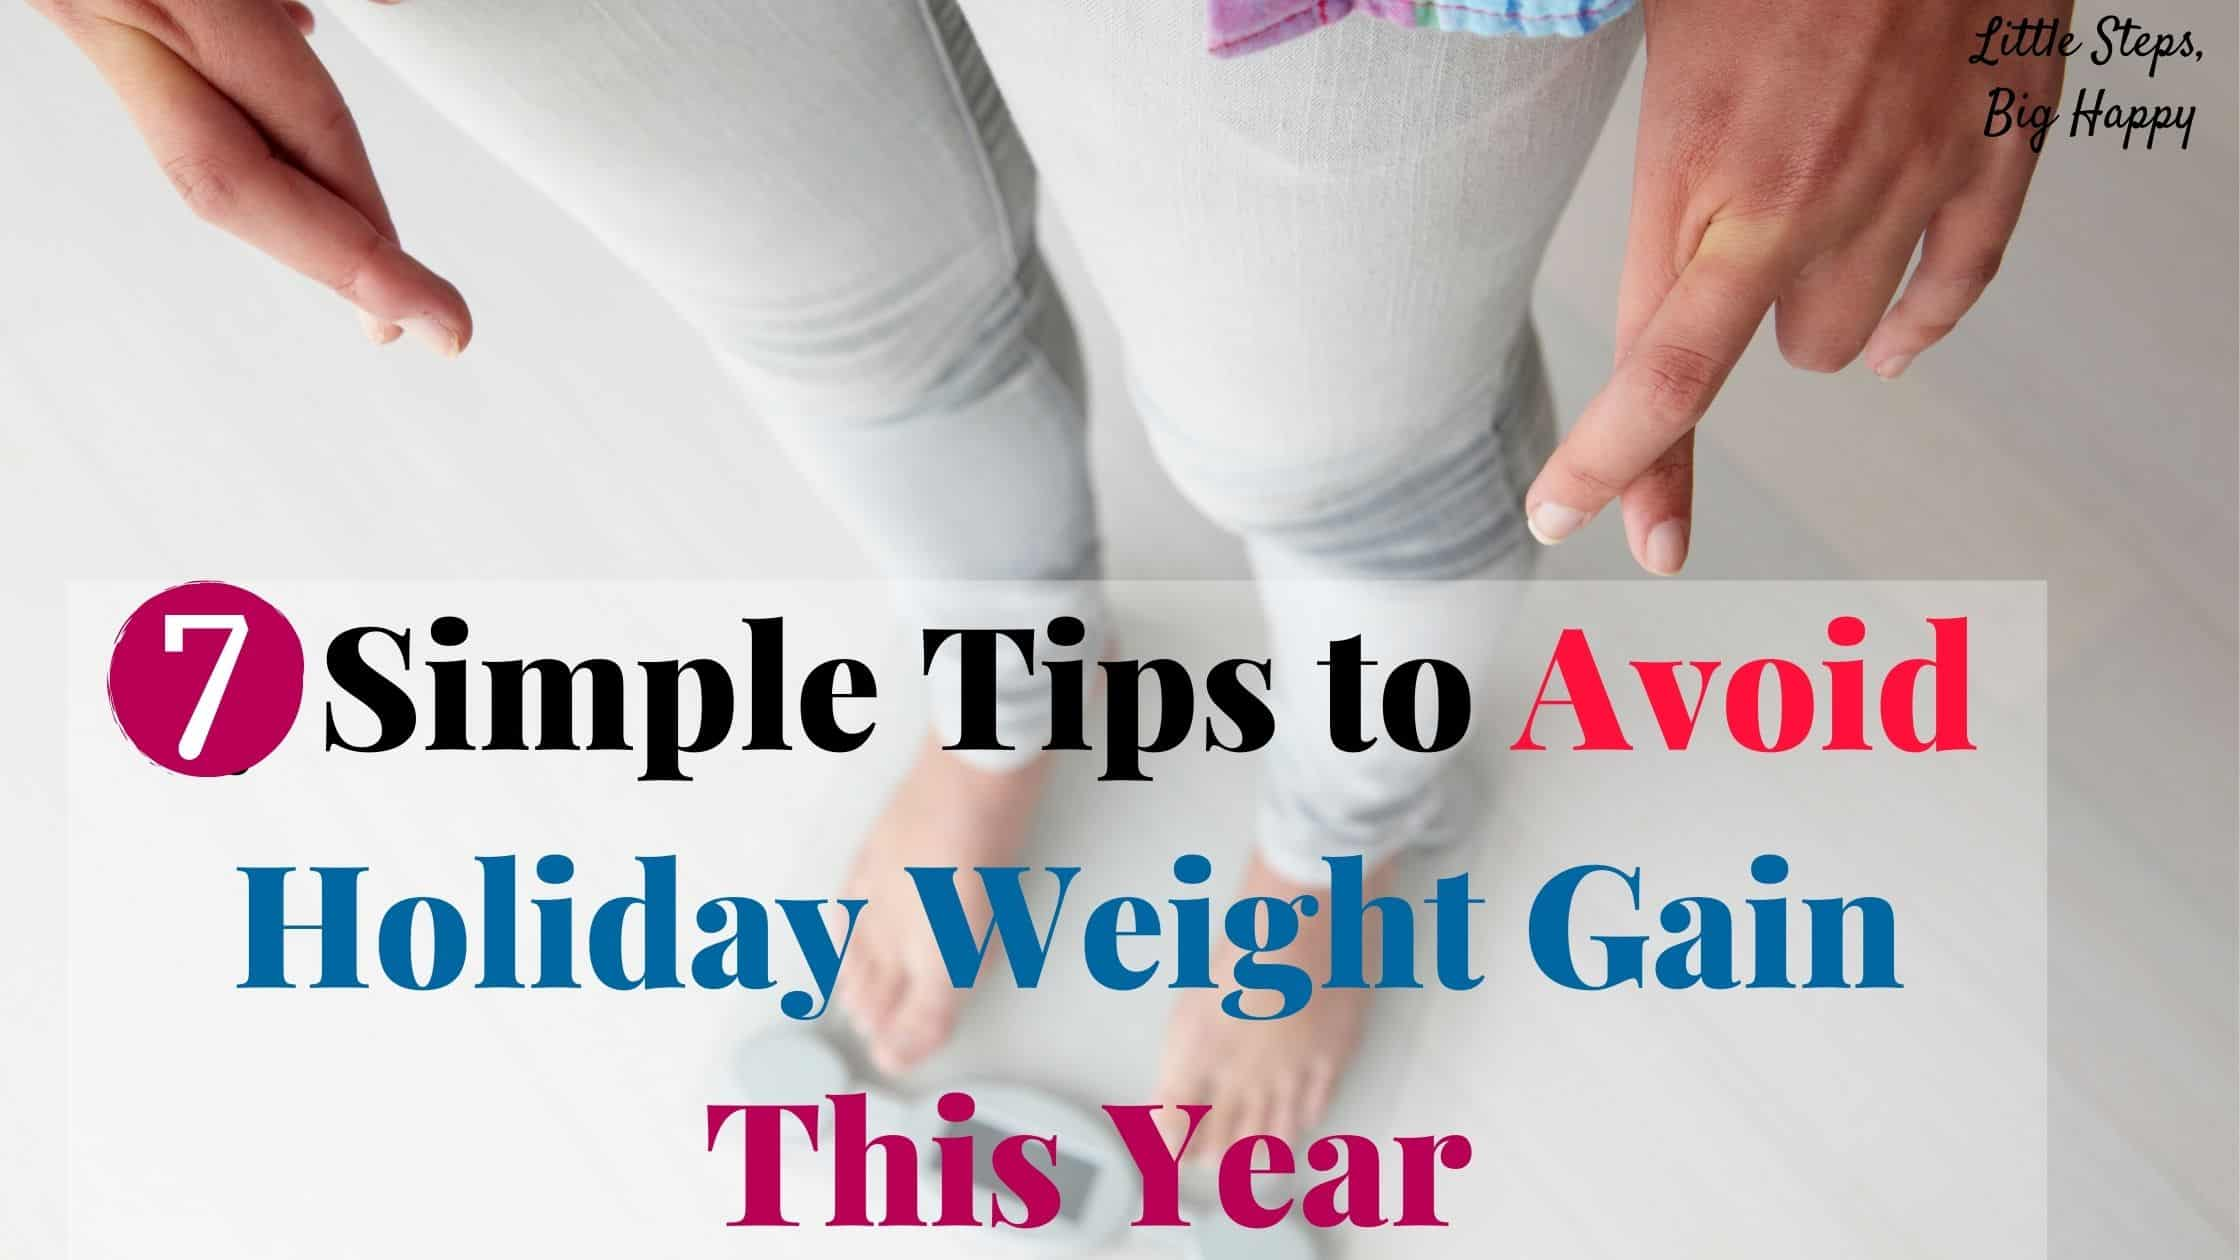 7 Simple Tips to Avoid Holiday Weight Gain This Year